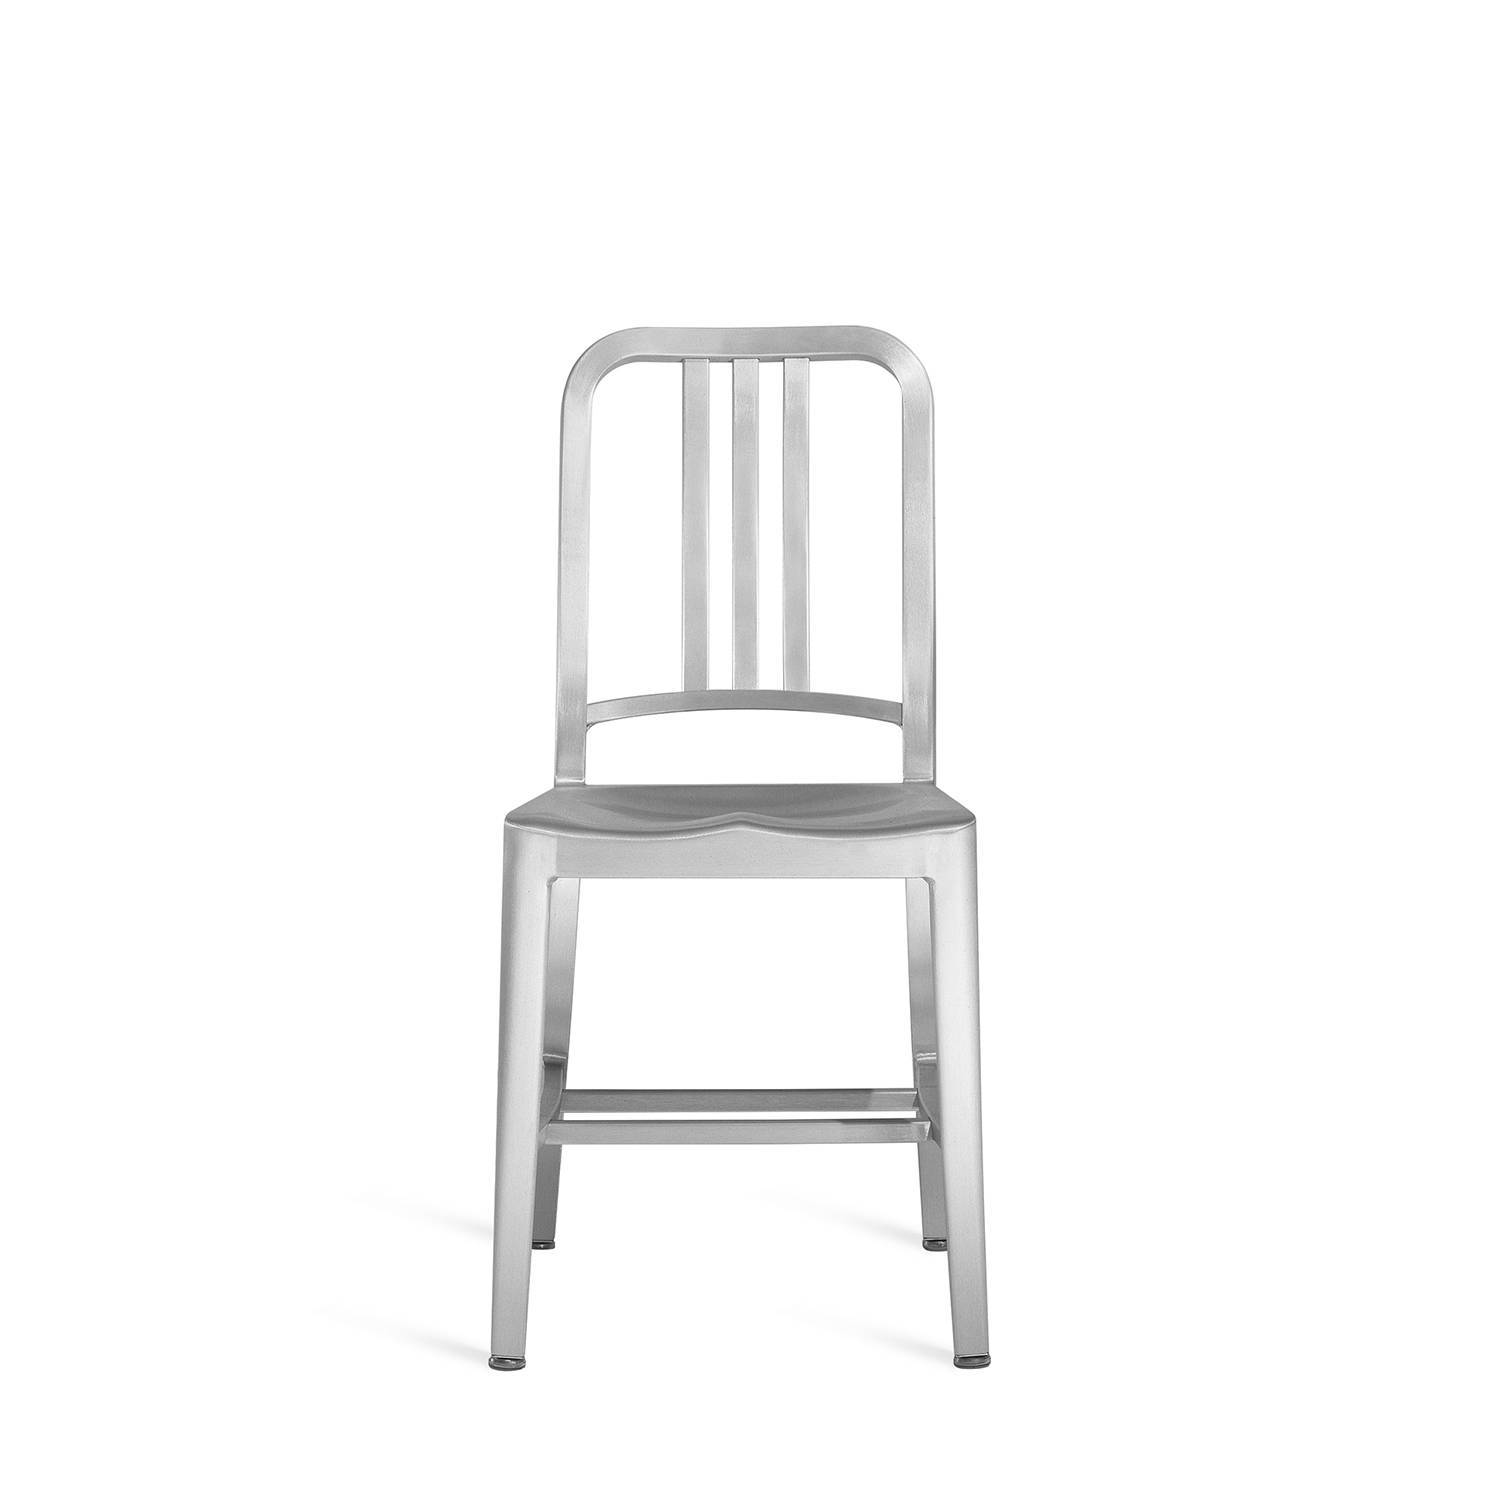 Emeco Navy Chair® Emeco Hand Brushed